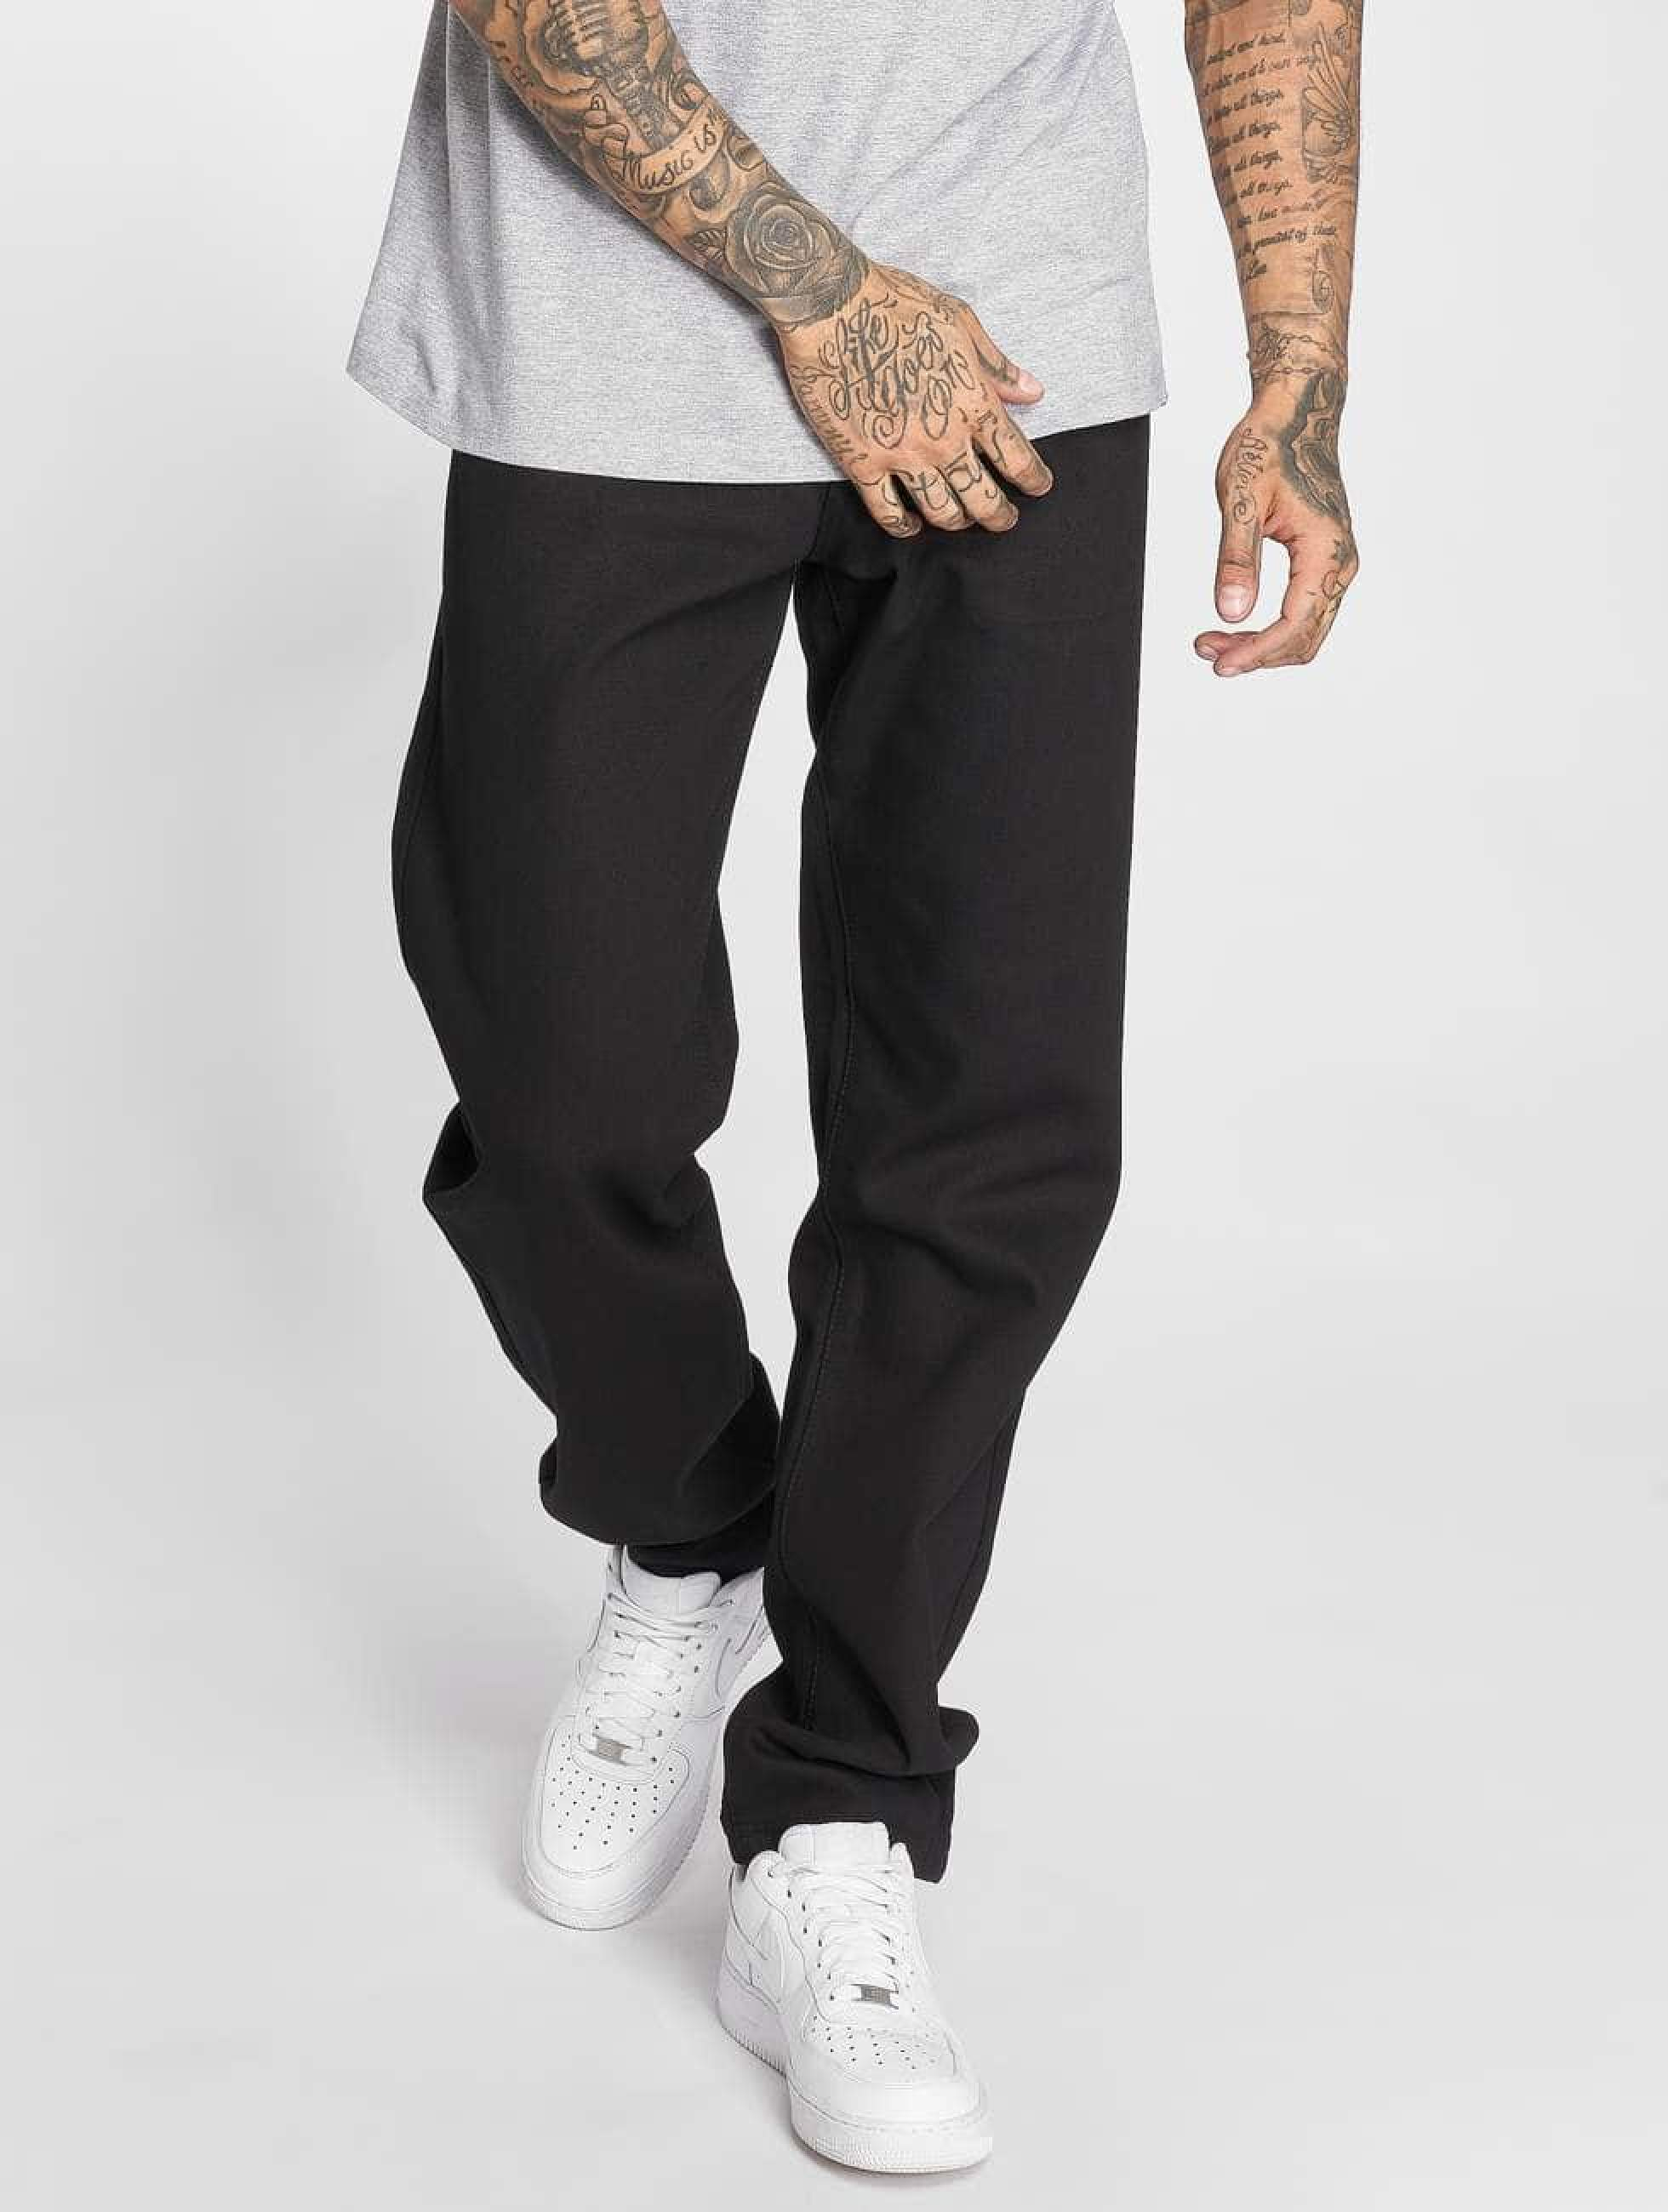 Thug Life / Carrot Fit Jeans B . Denim in black W 36 L 34